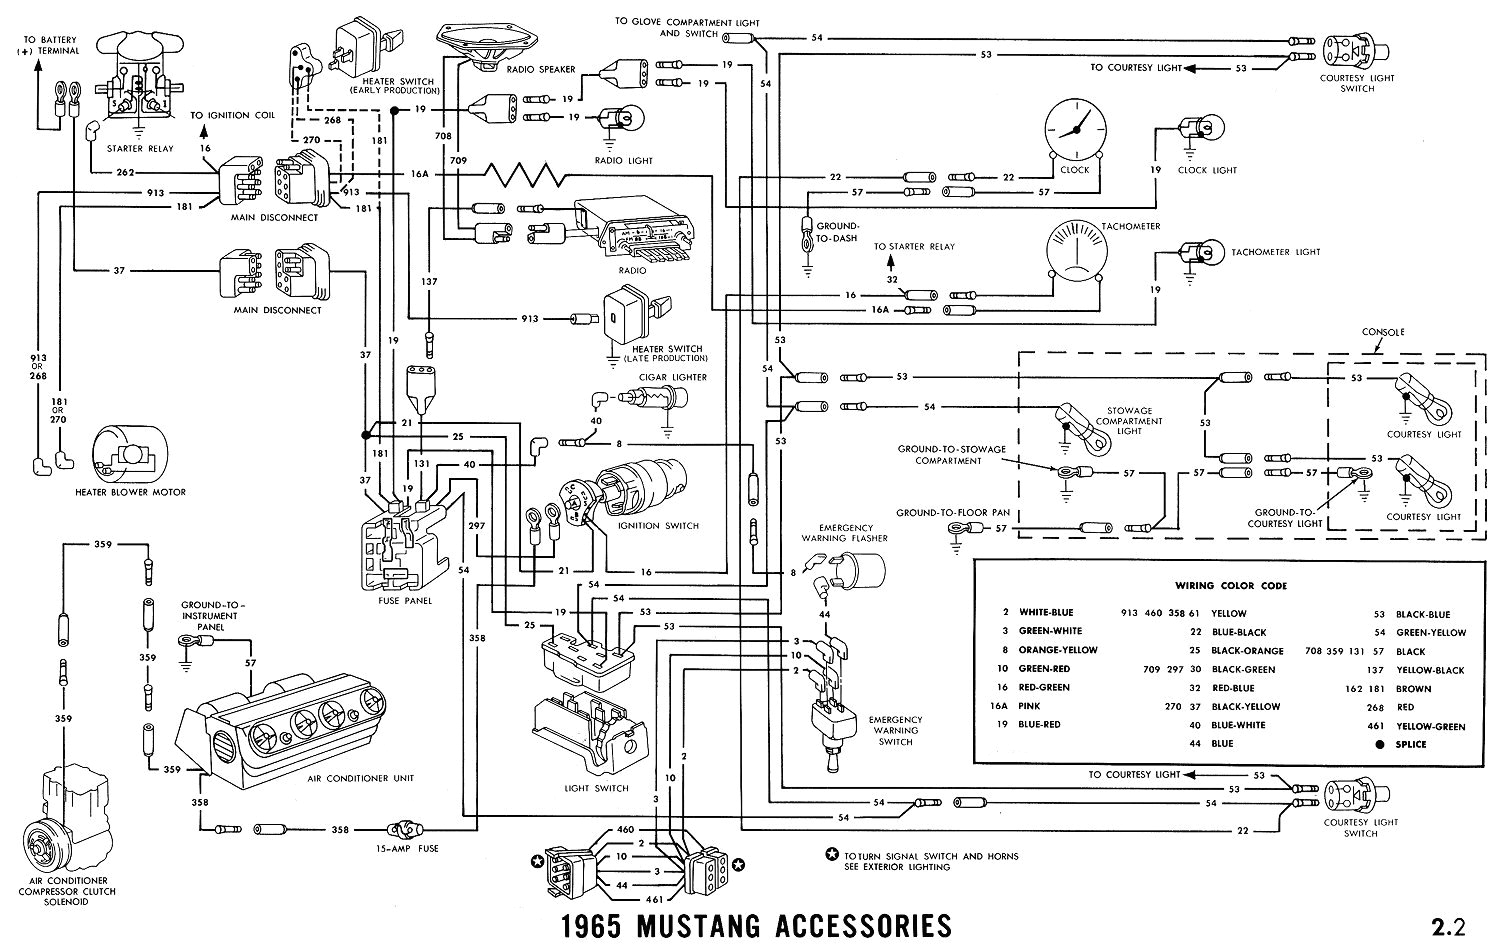 1965 ford mustang wiring harness data schematic diagram 65 mustang wiring harness wiring diagram page 1965